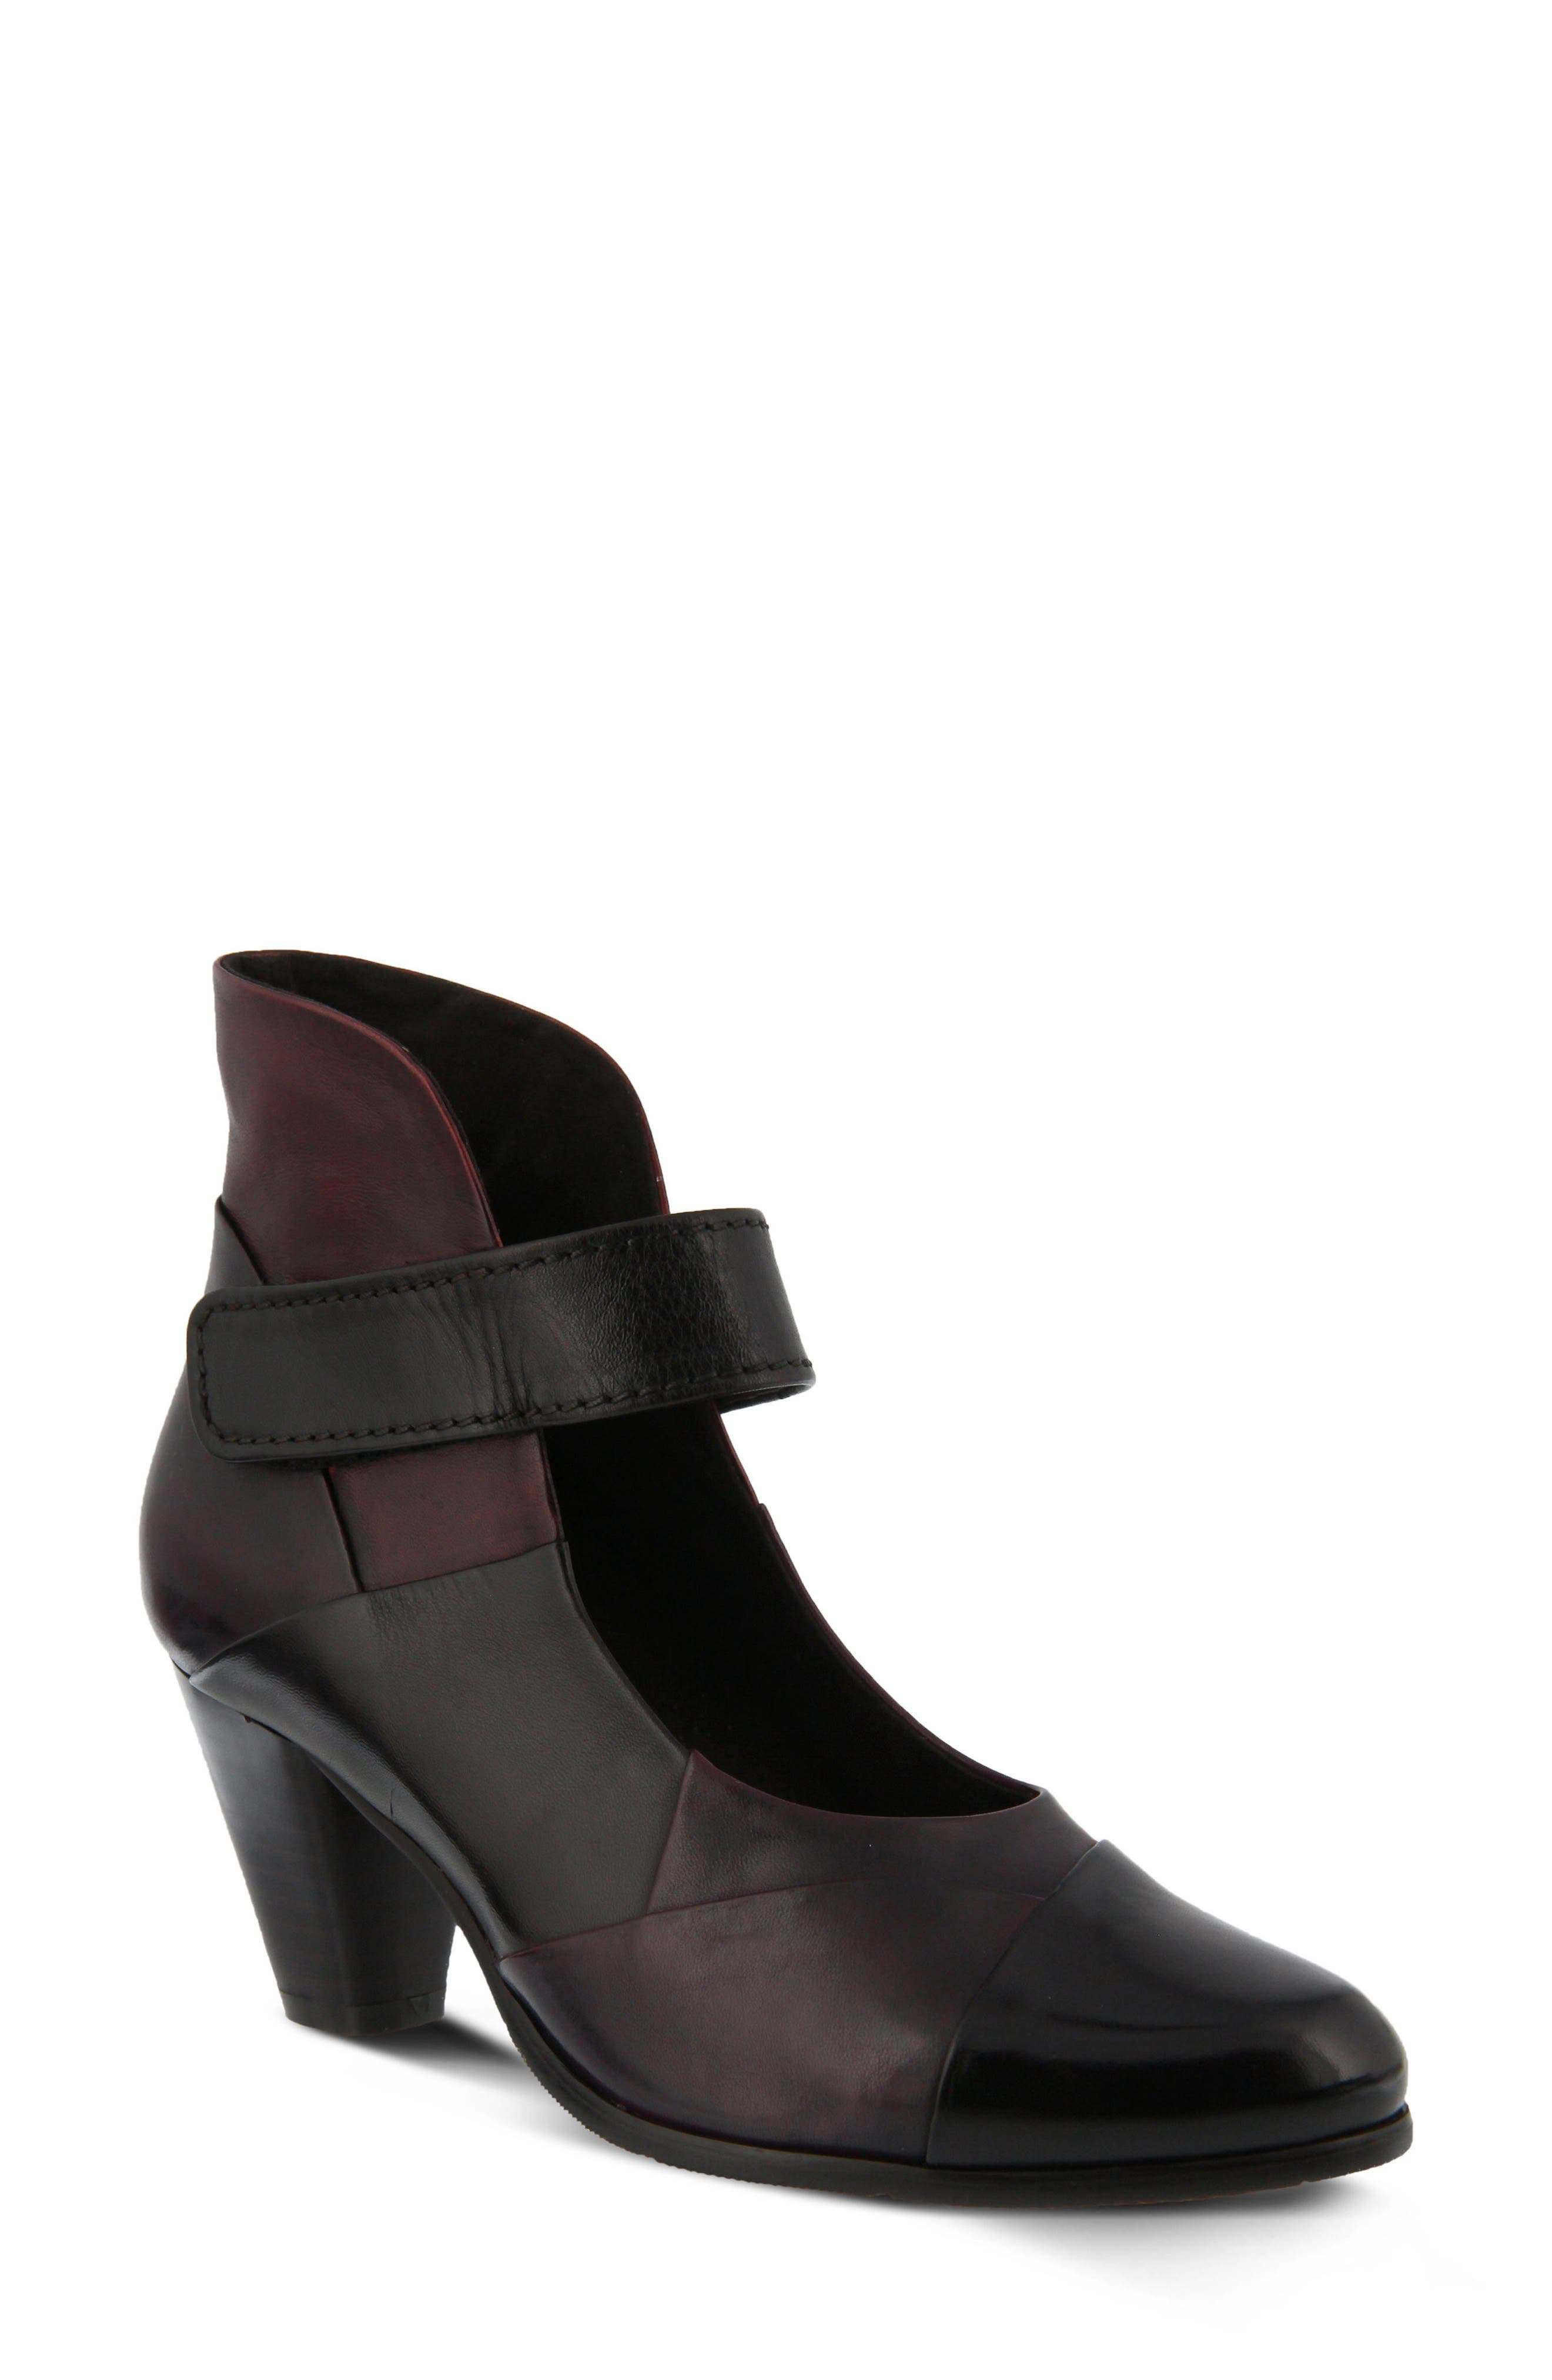 Spring Step Chapeco Patchwork Ankle Strap Pump - Brown